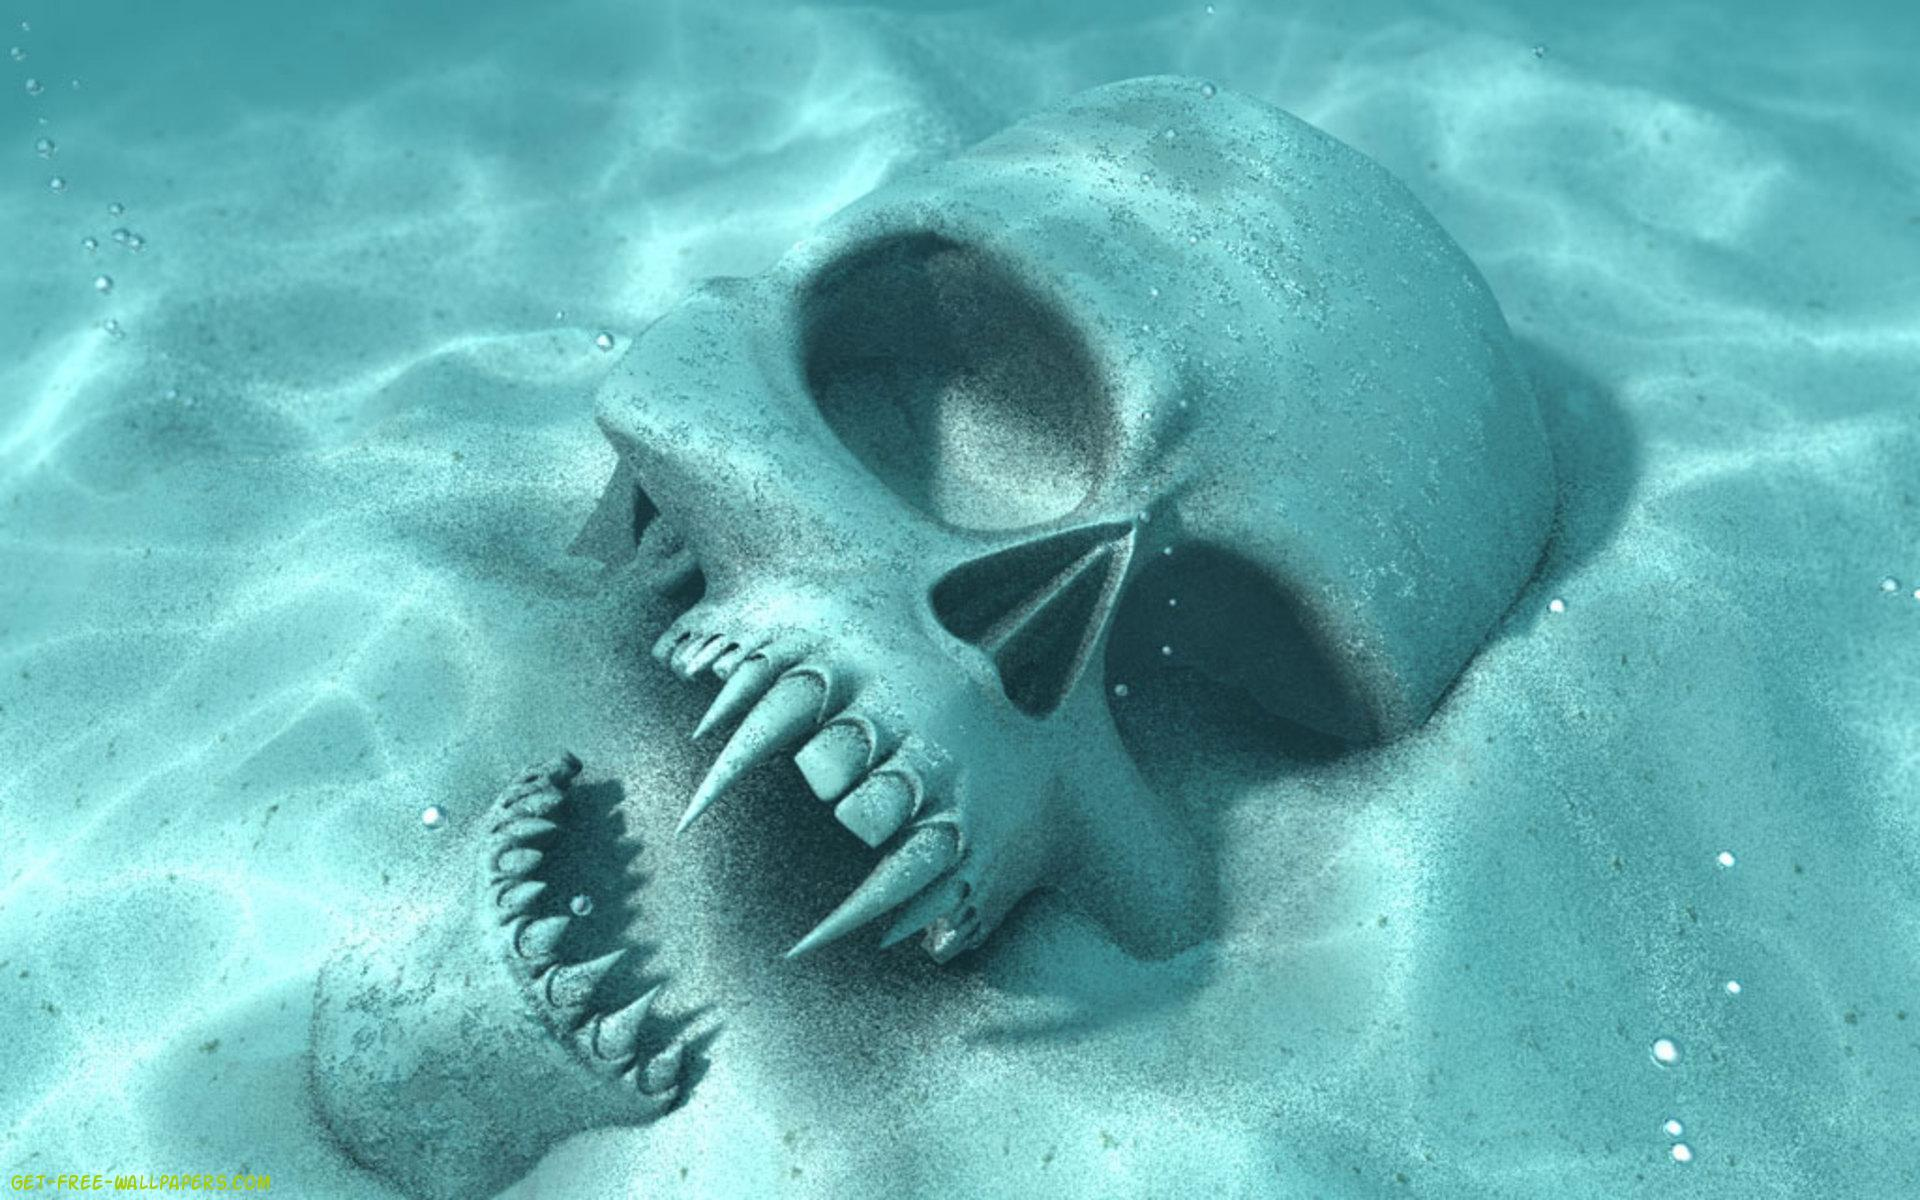 skull , background, texture, photo, skull in water texture background